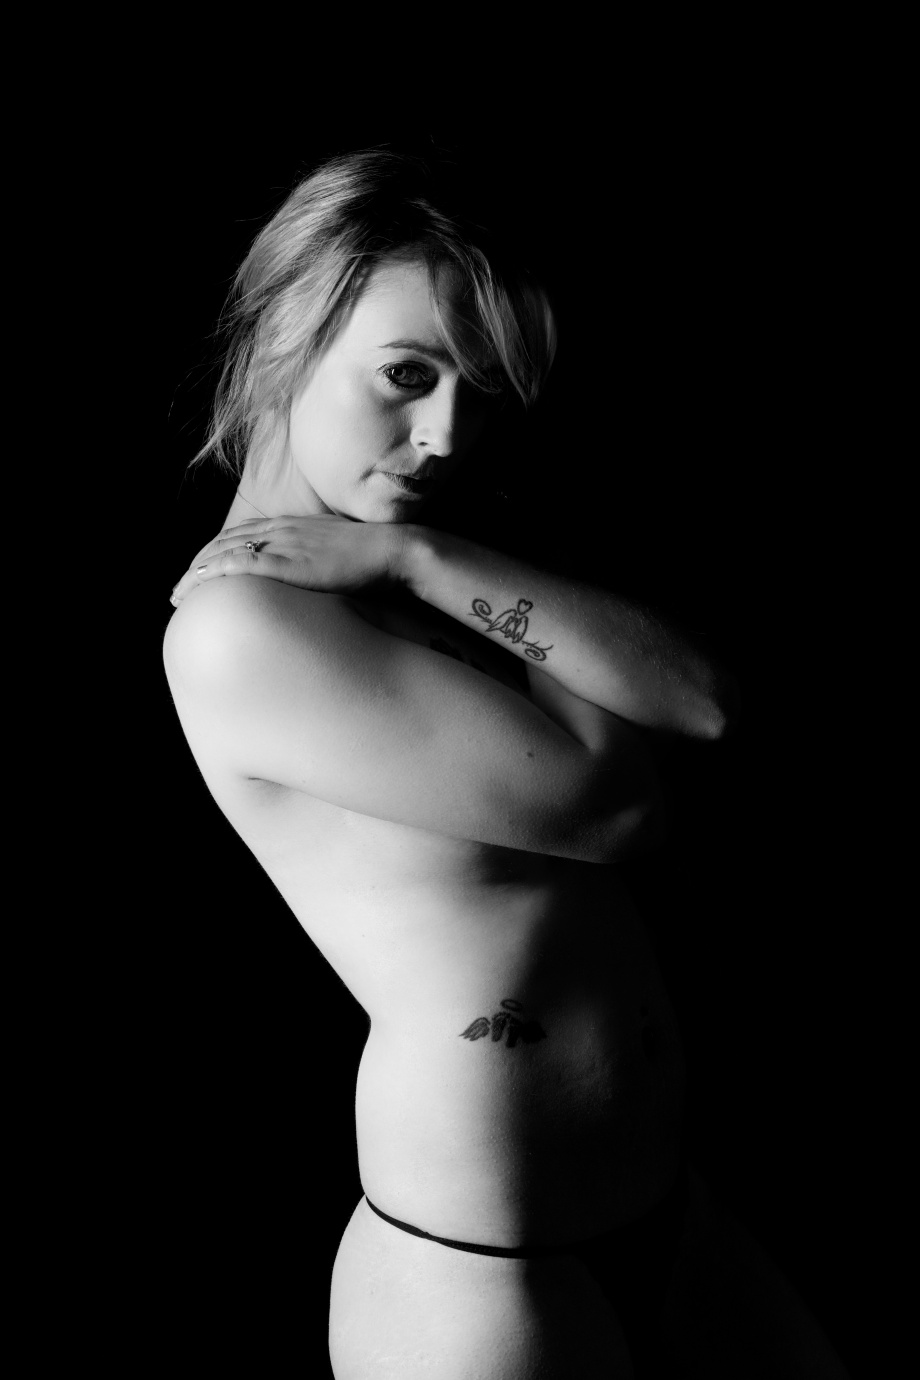 Cliona B, Glamour, Barbarella Band, photoshoot, studio, boudoir, topless